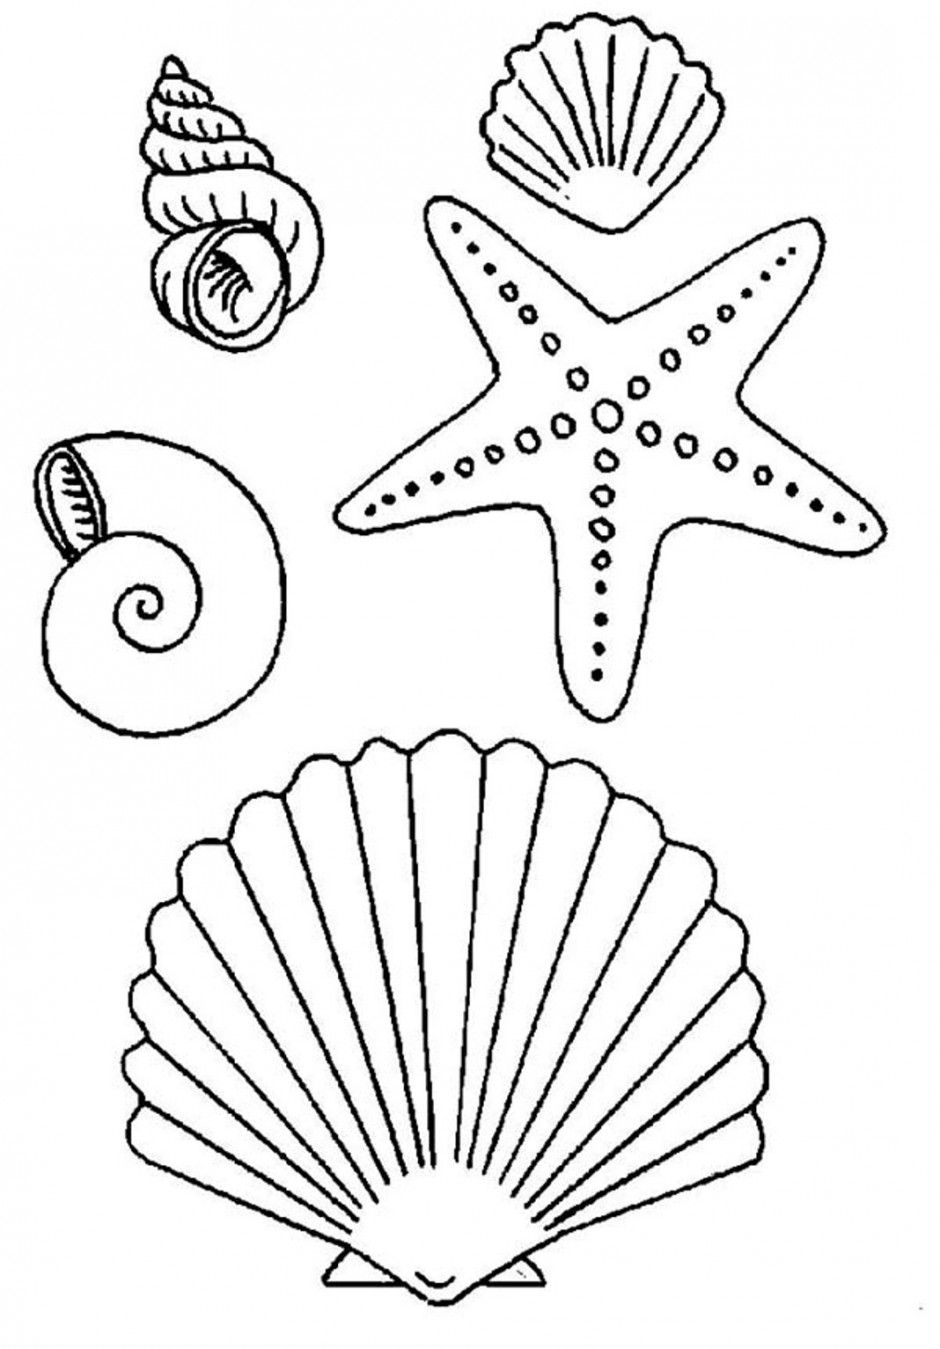 Coloring Sheet Starfish Google Search Coloring Pages Crafts